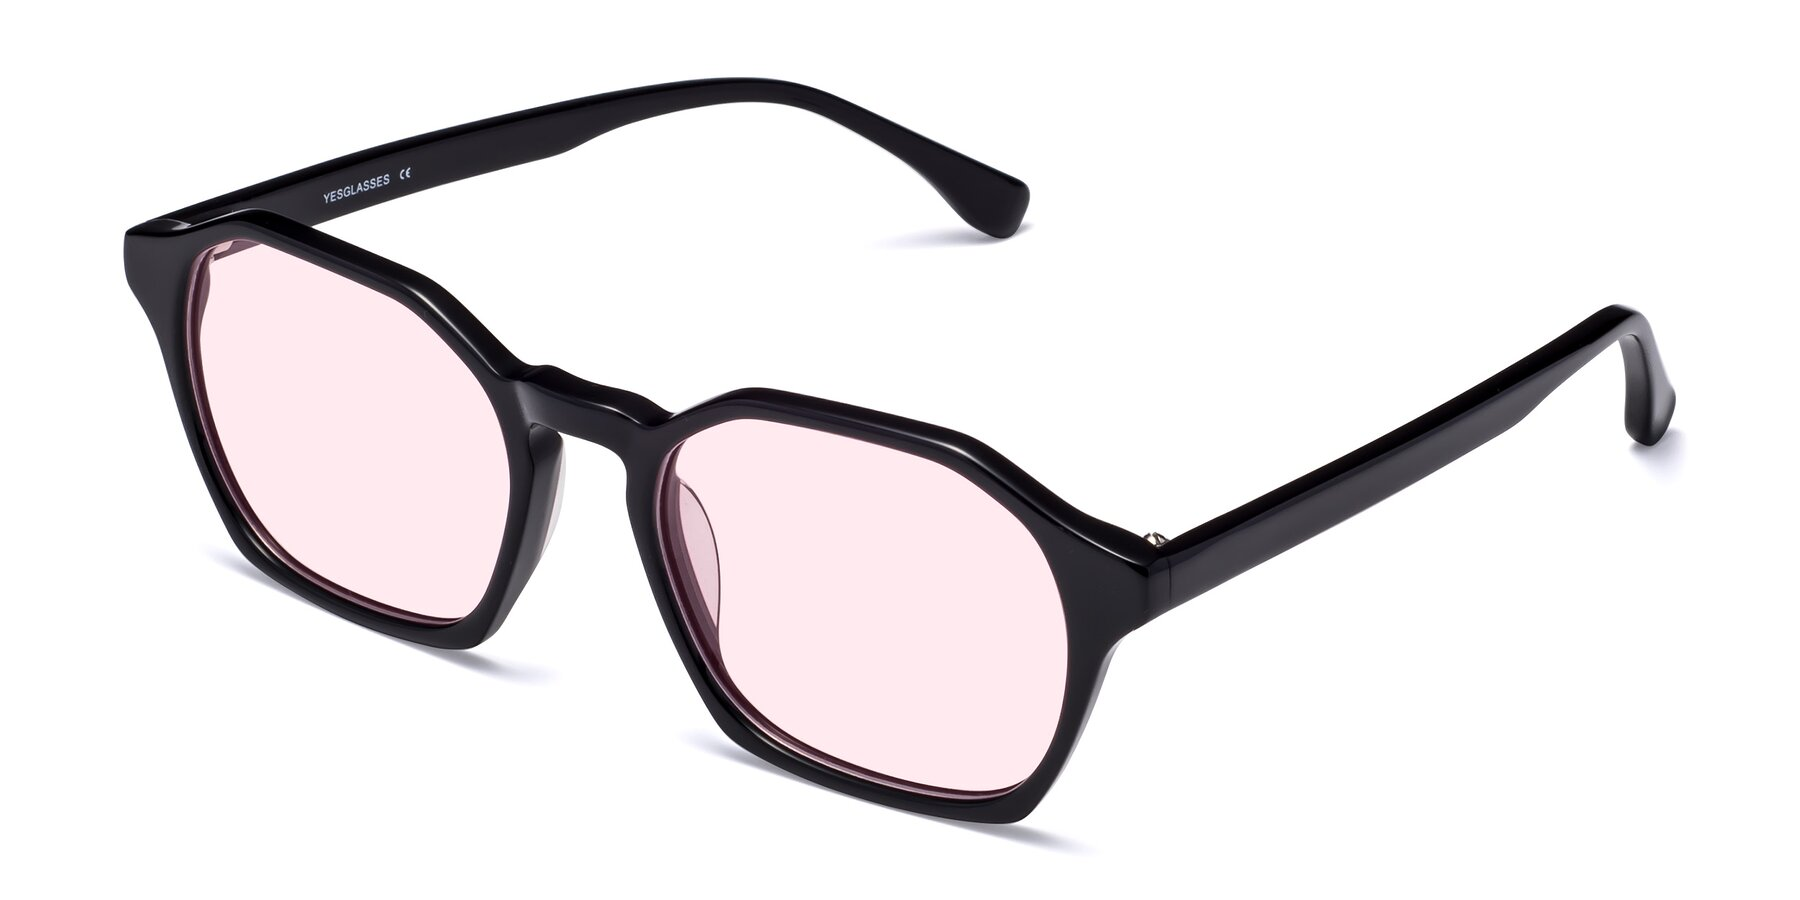 Angle of Stoltz in Black with Light Pink Tinted Lenses